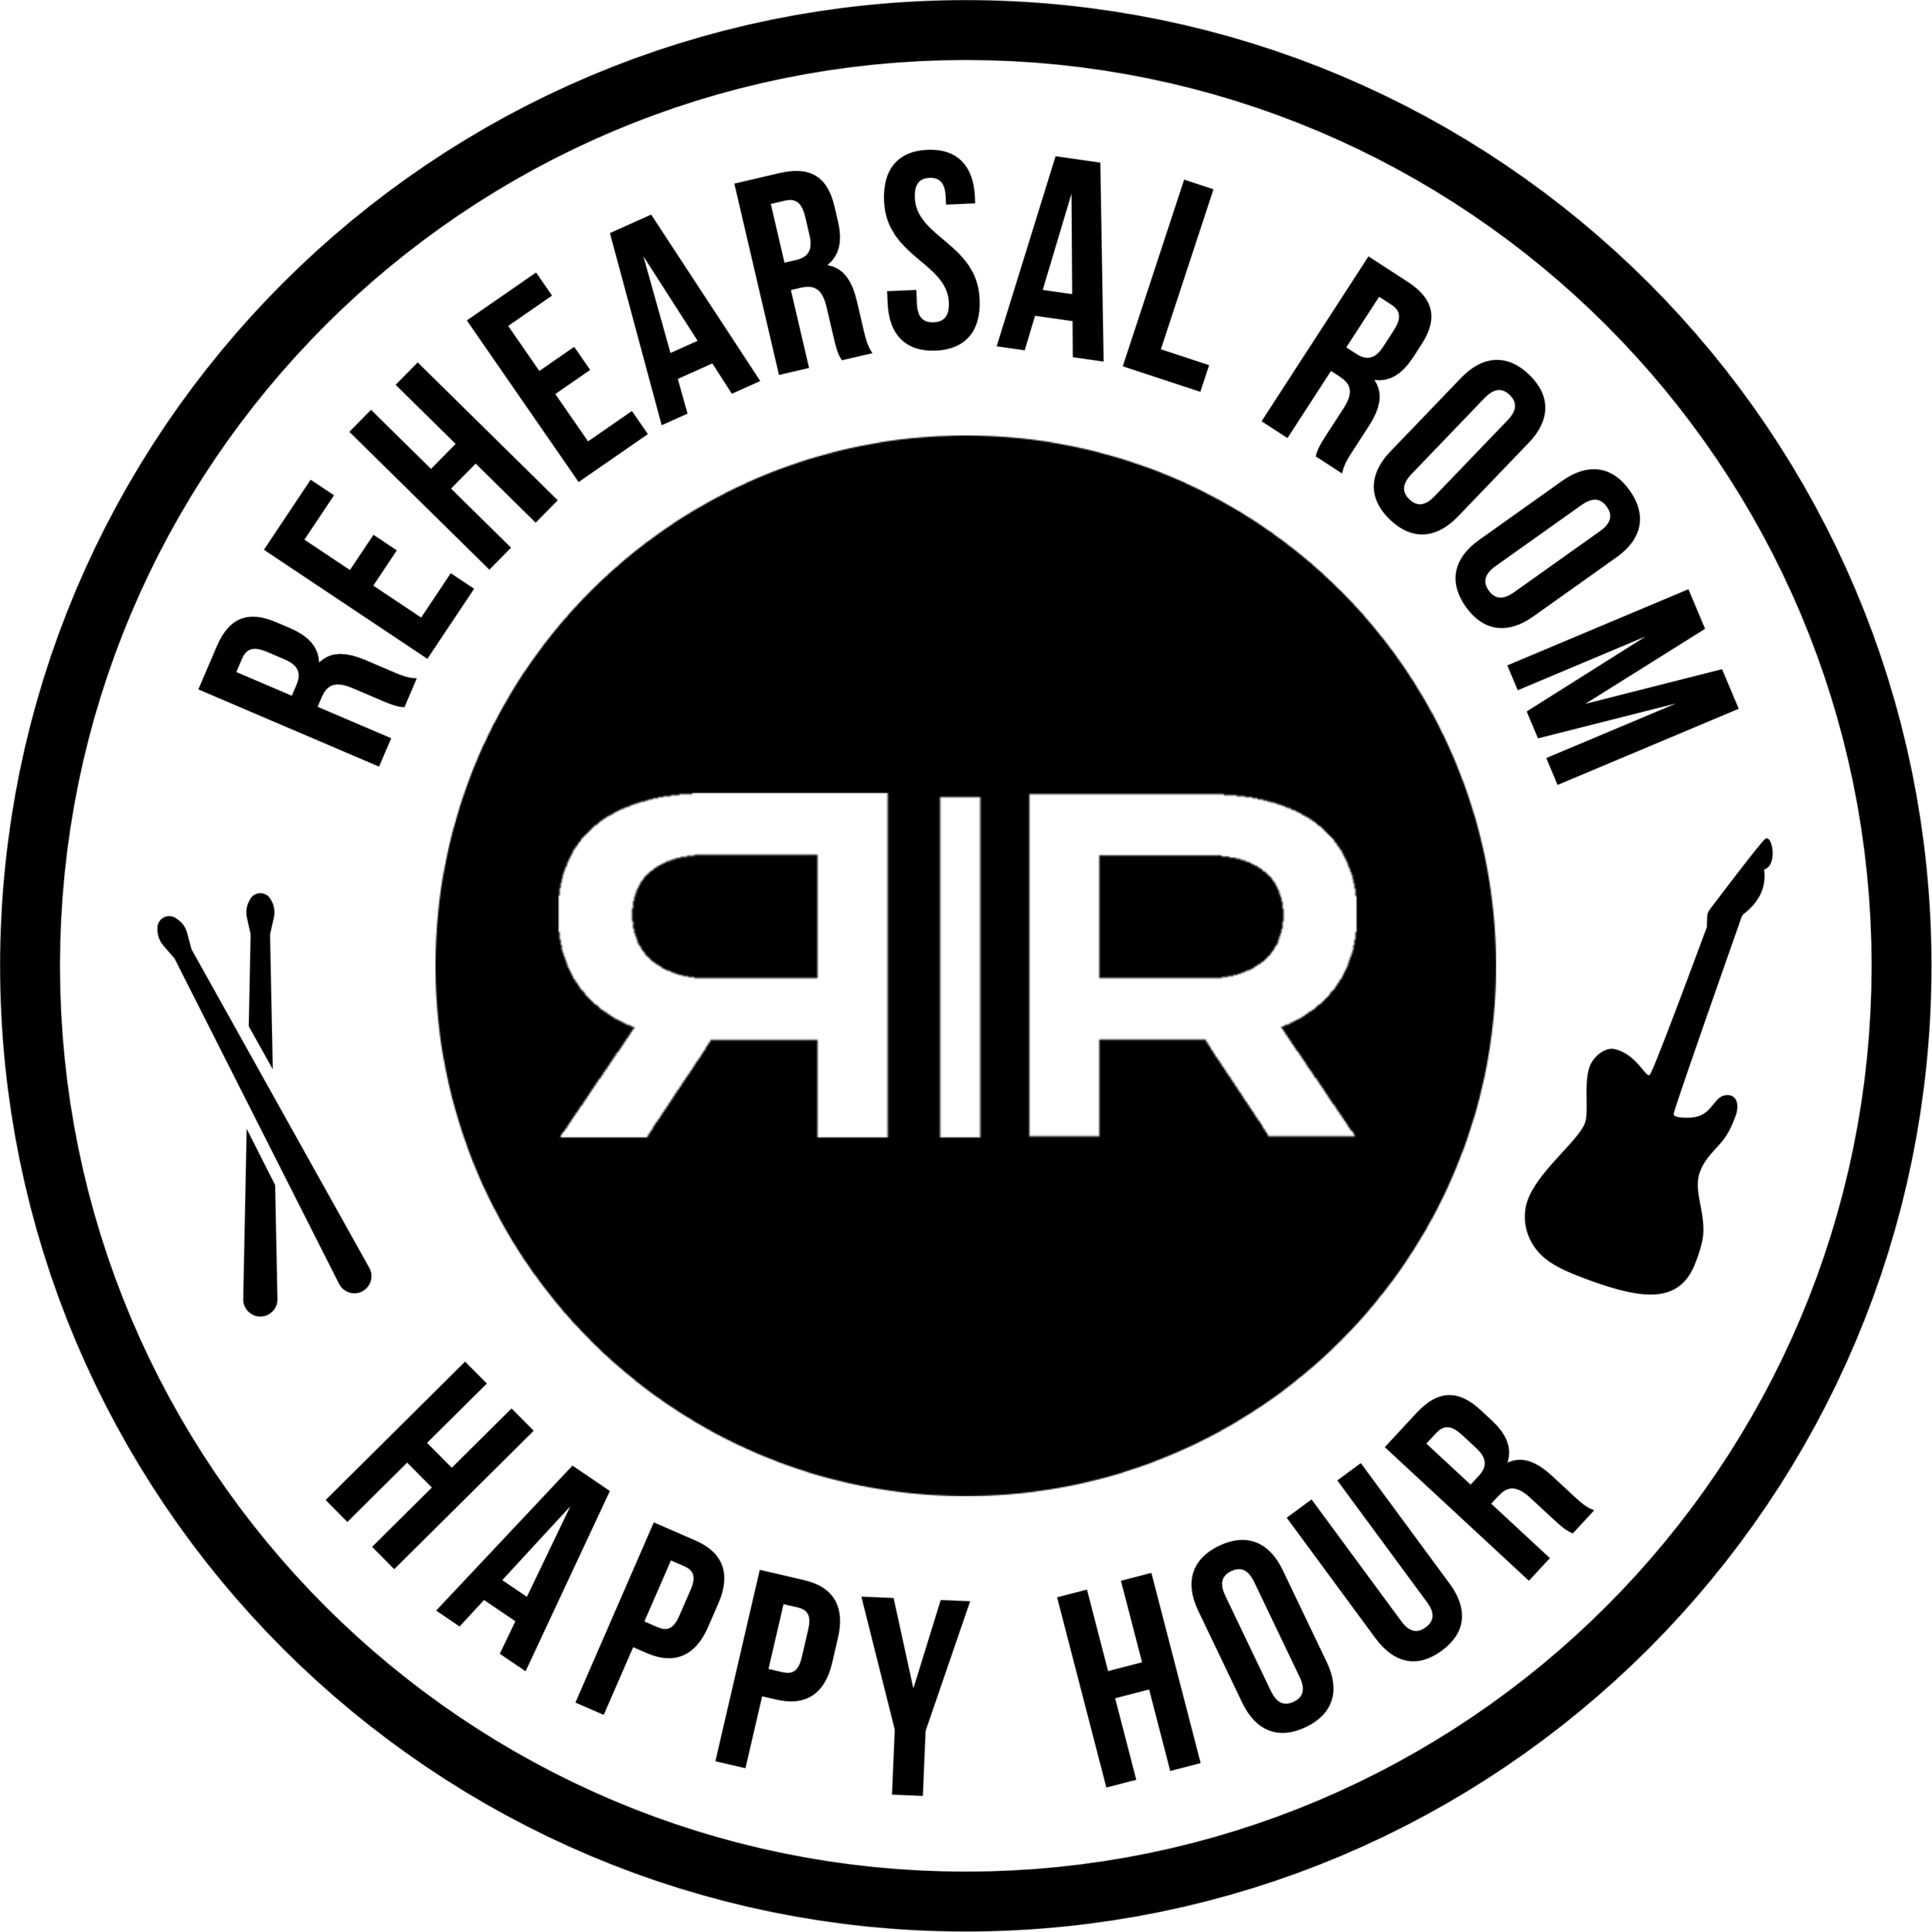 happy hour logo.png